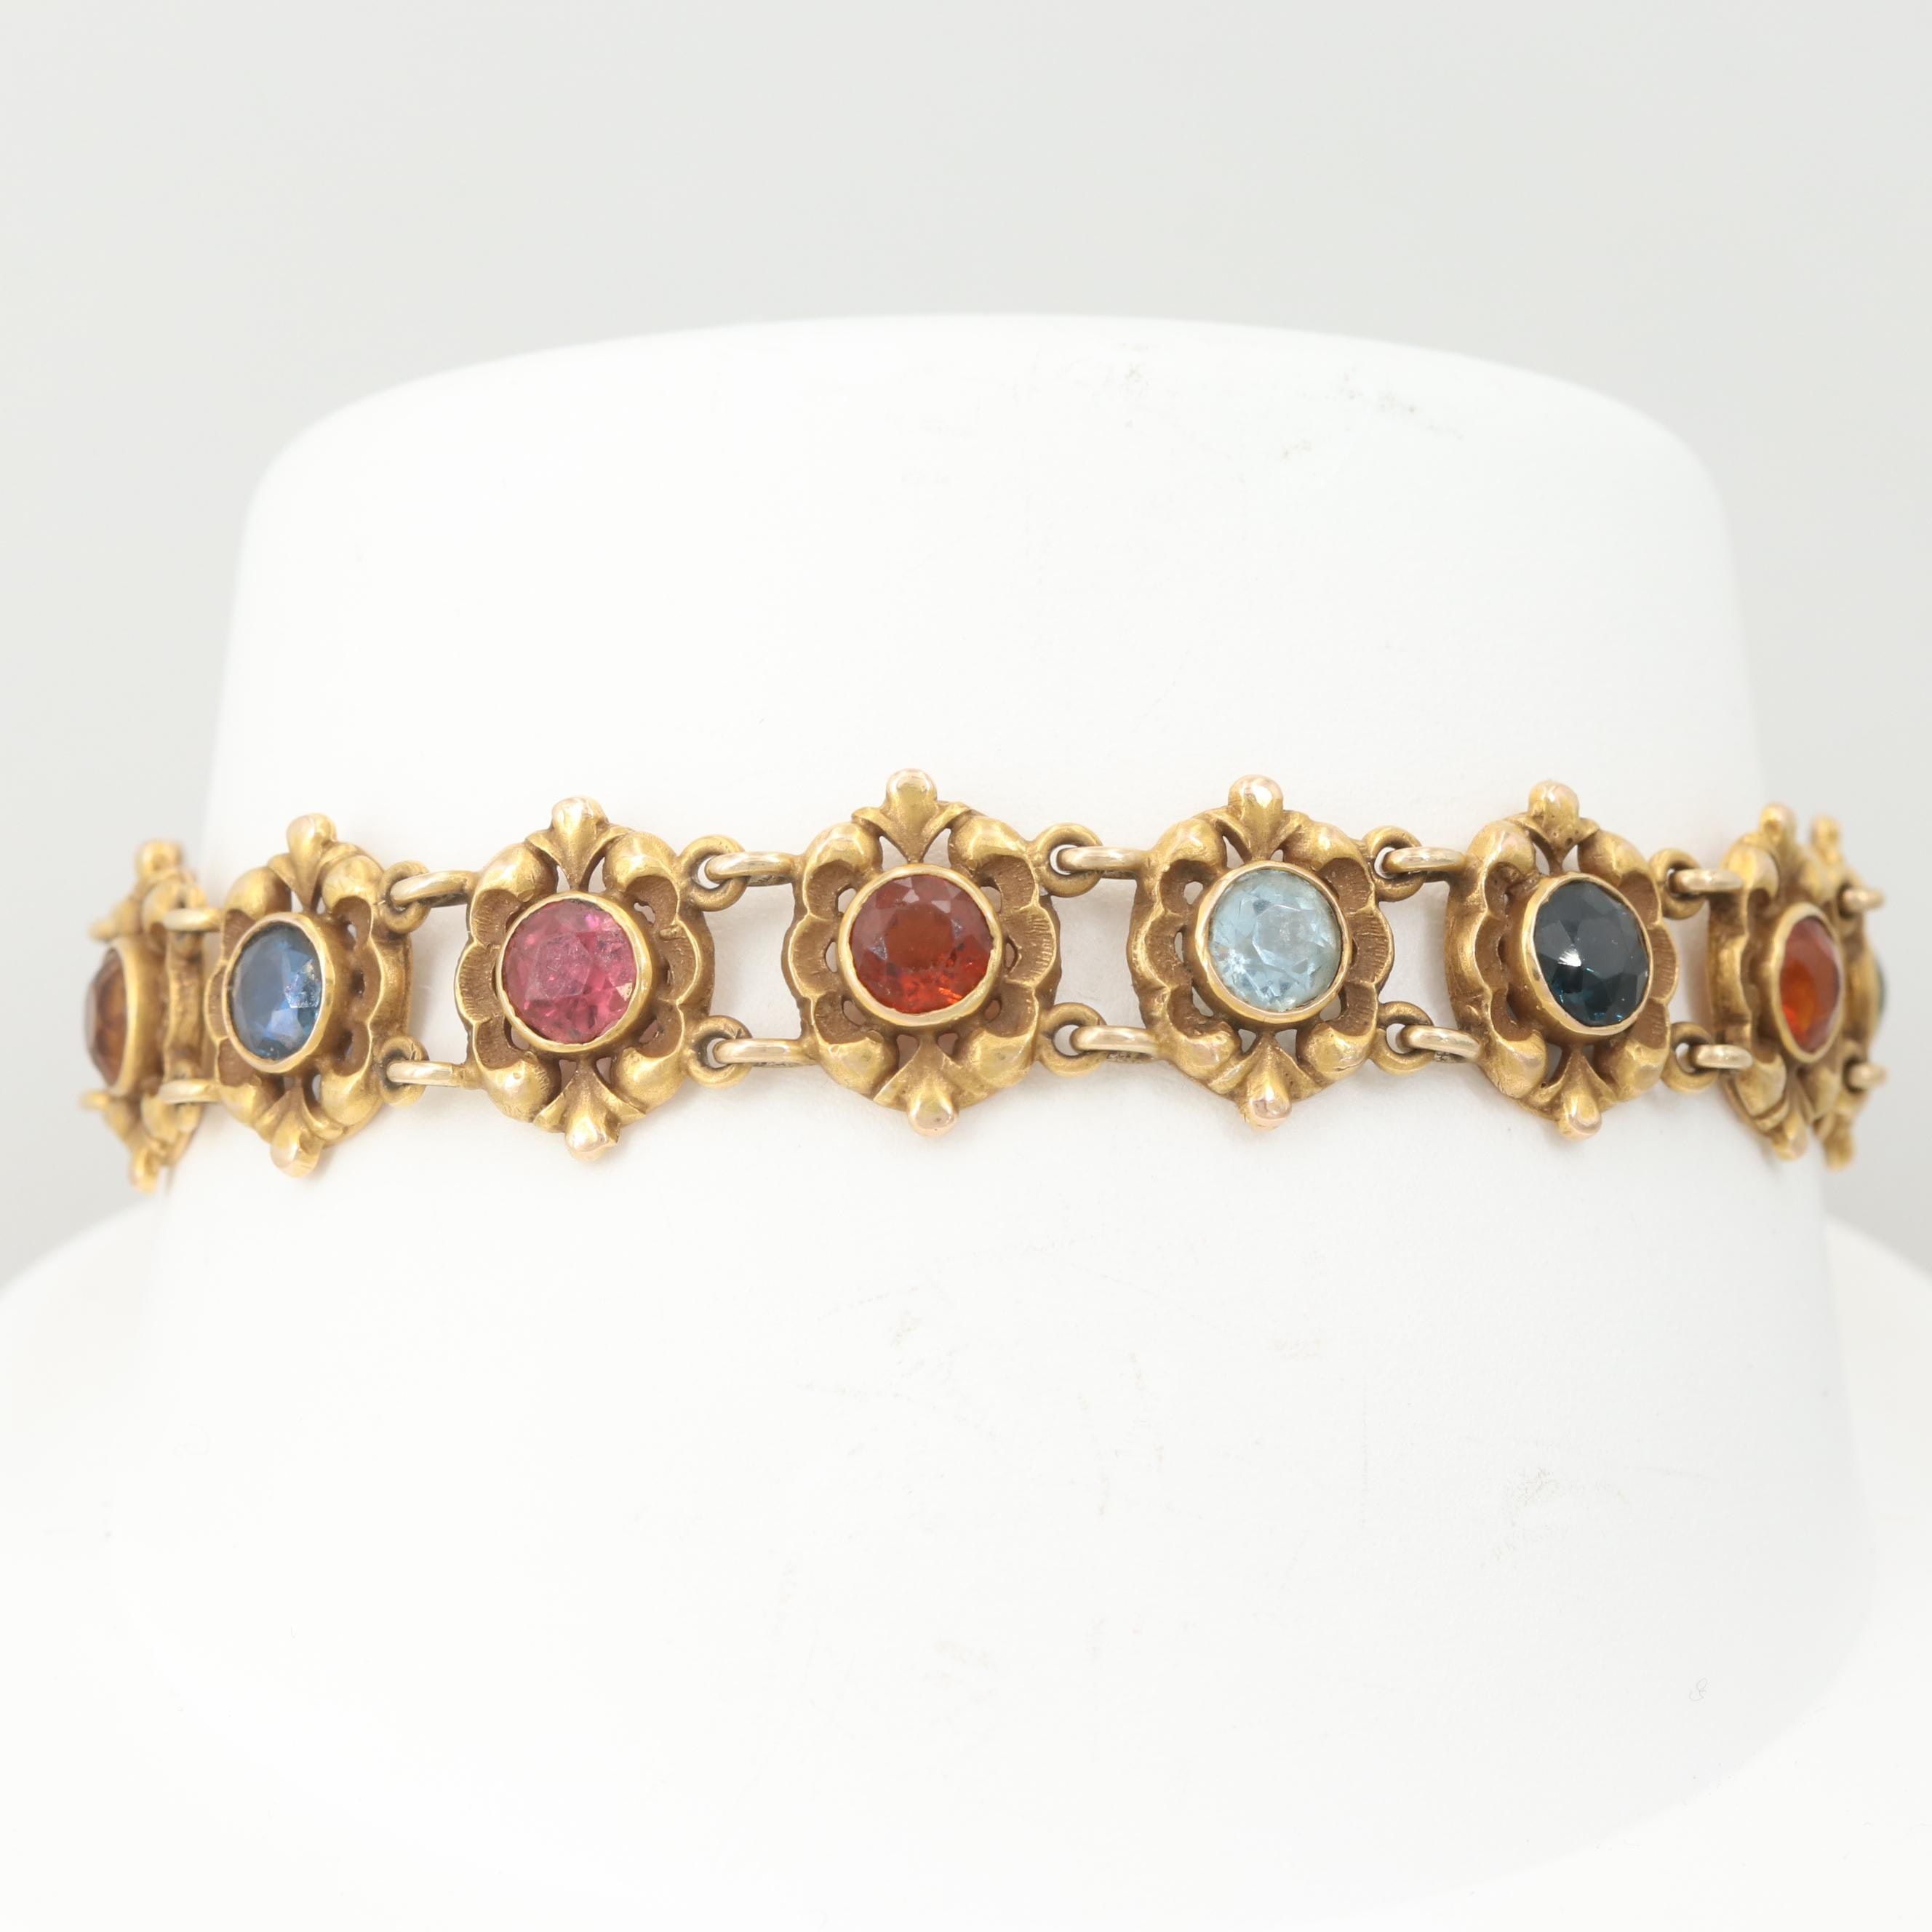 Vintage 14K Yellow Gold Sapphire, Aquamarine and Gemstone Bracelet